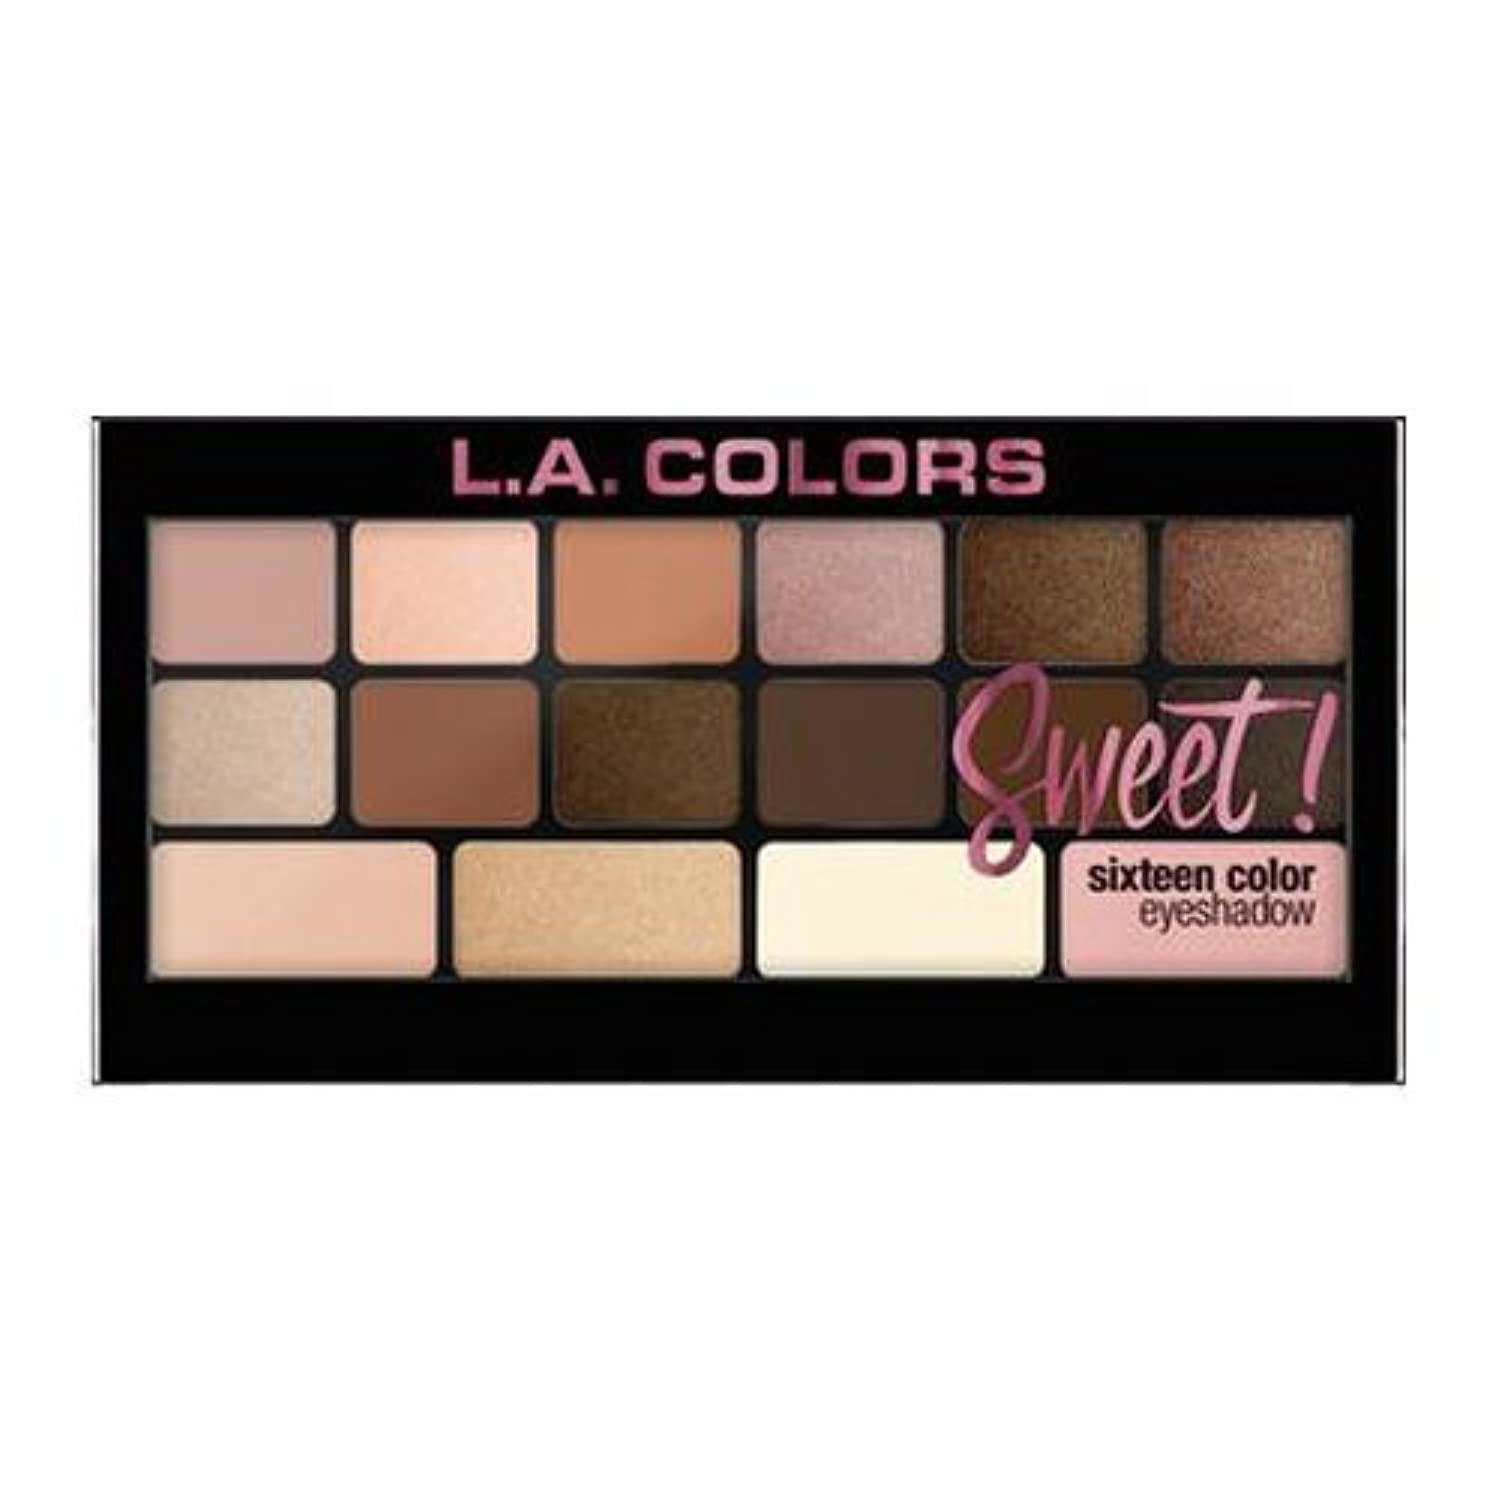 奇妙な方法パイル(6 Pack) L.A. Colors Sweet! 16 Color Eyeshadow Palette - Charming (並行輸入品)